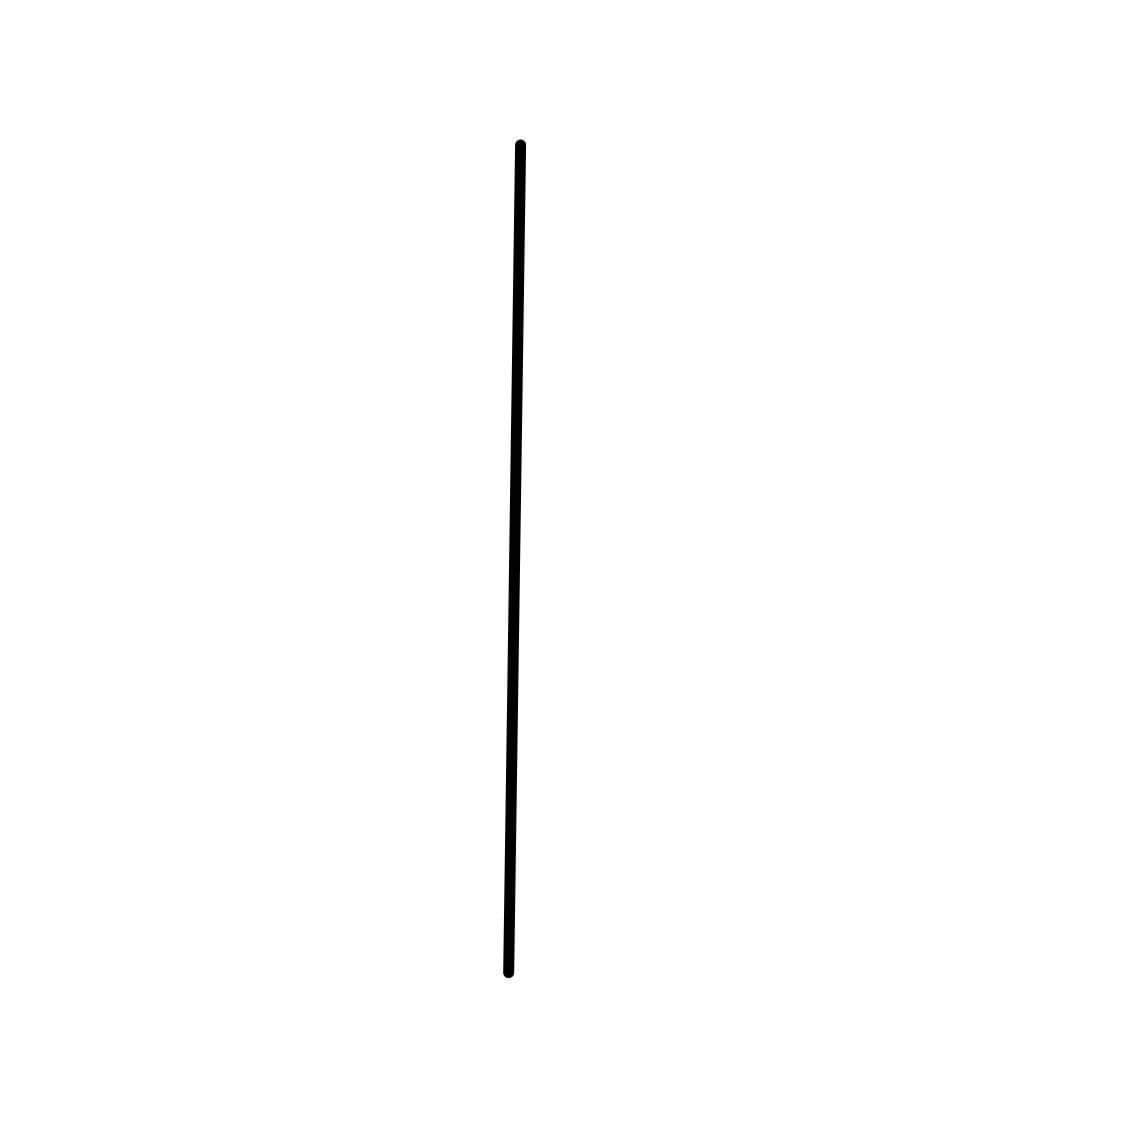 Vertical line perfectly placed on the center